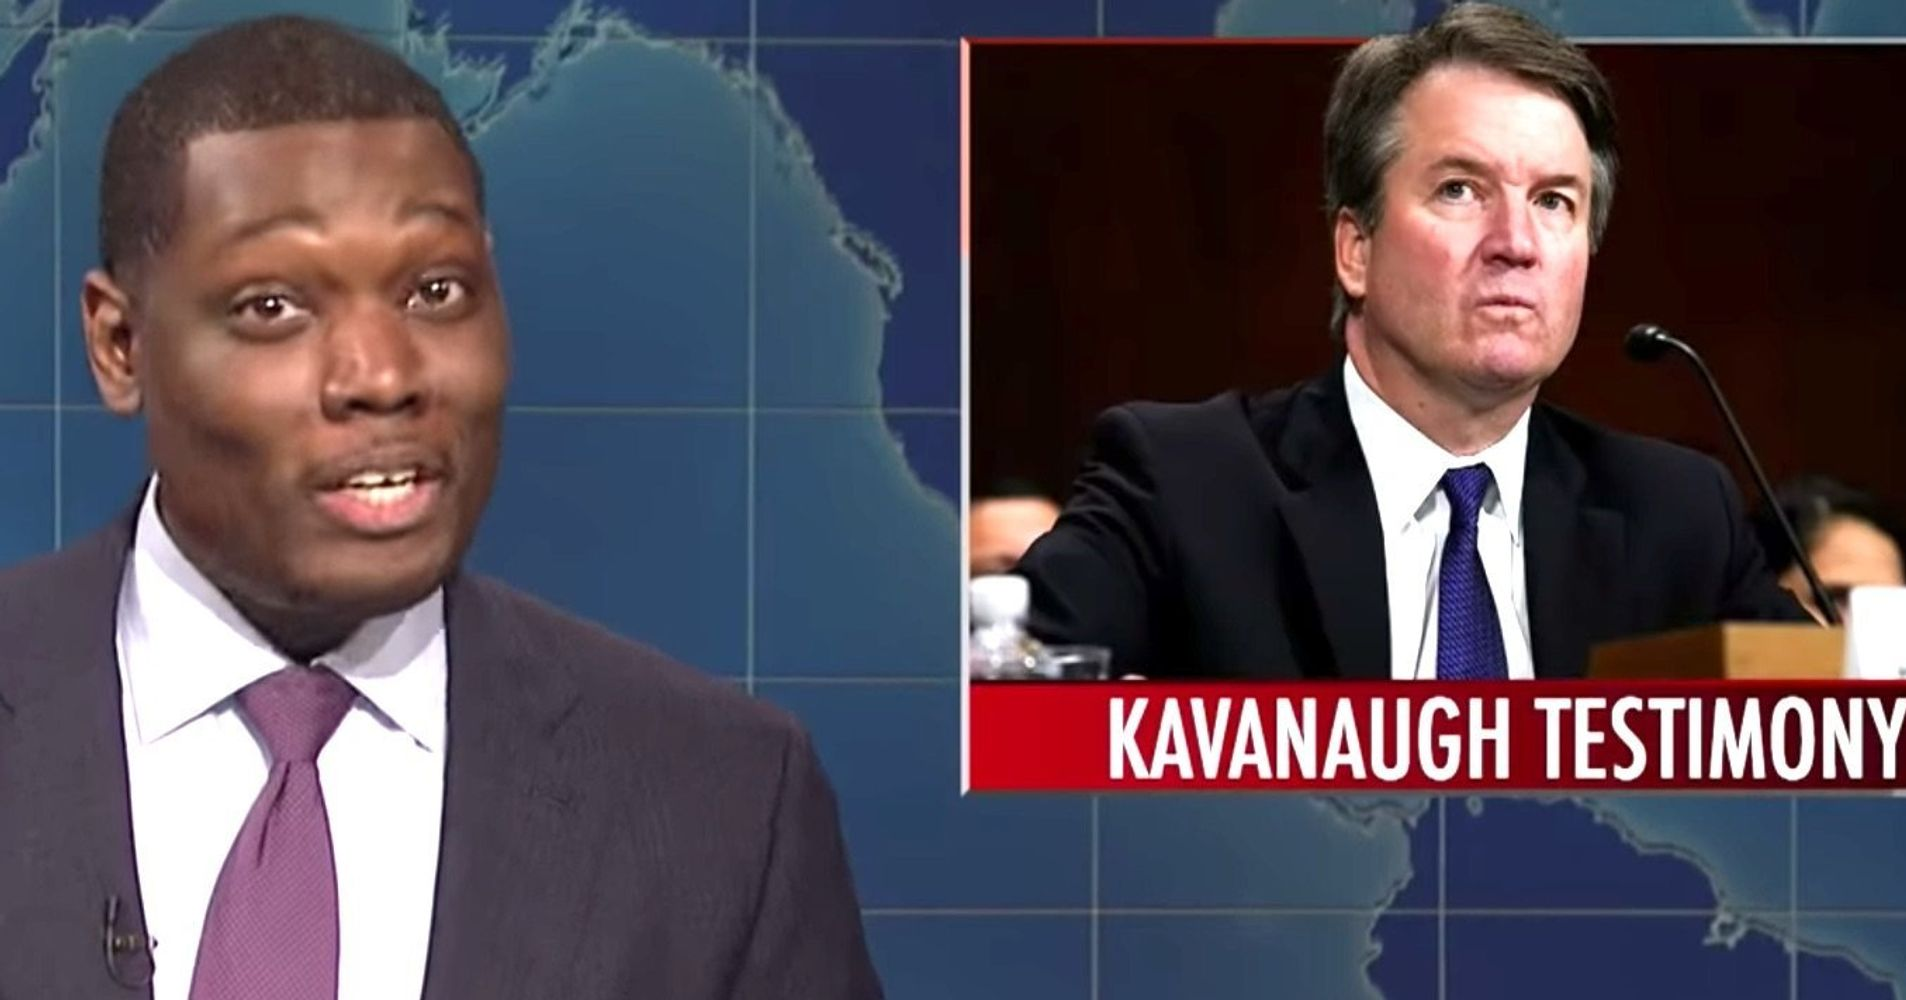 Image result for Kavanaugh snl michael che